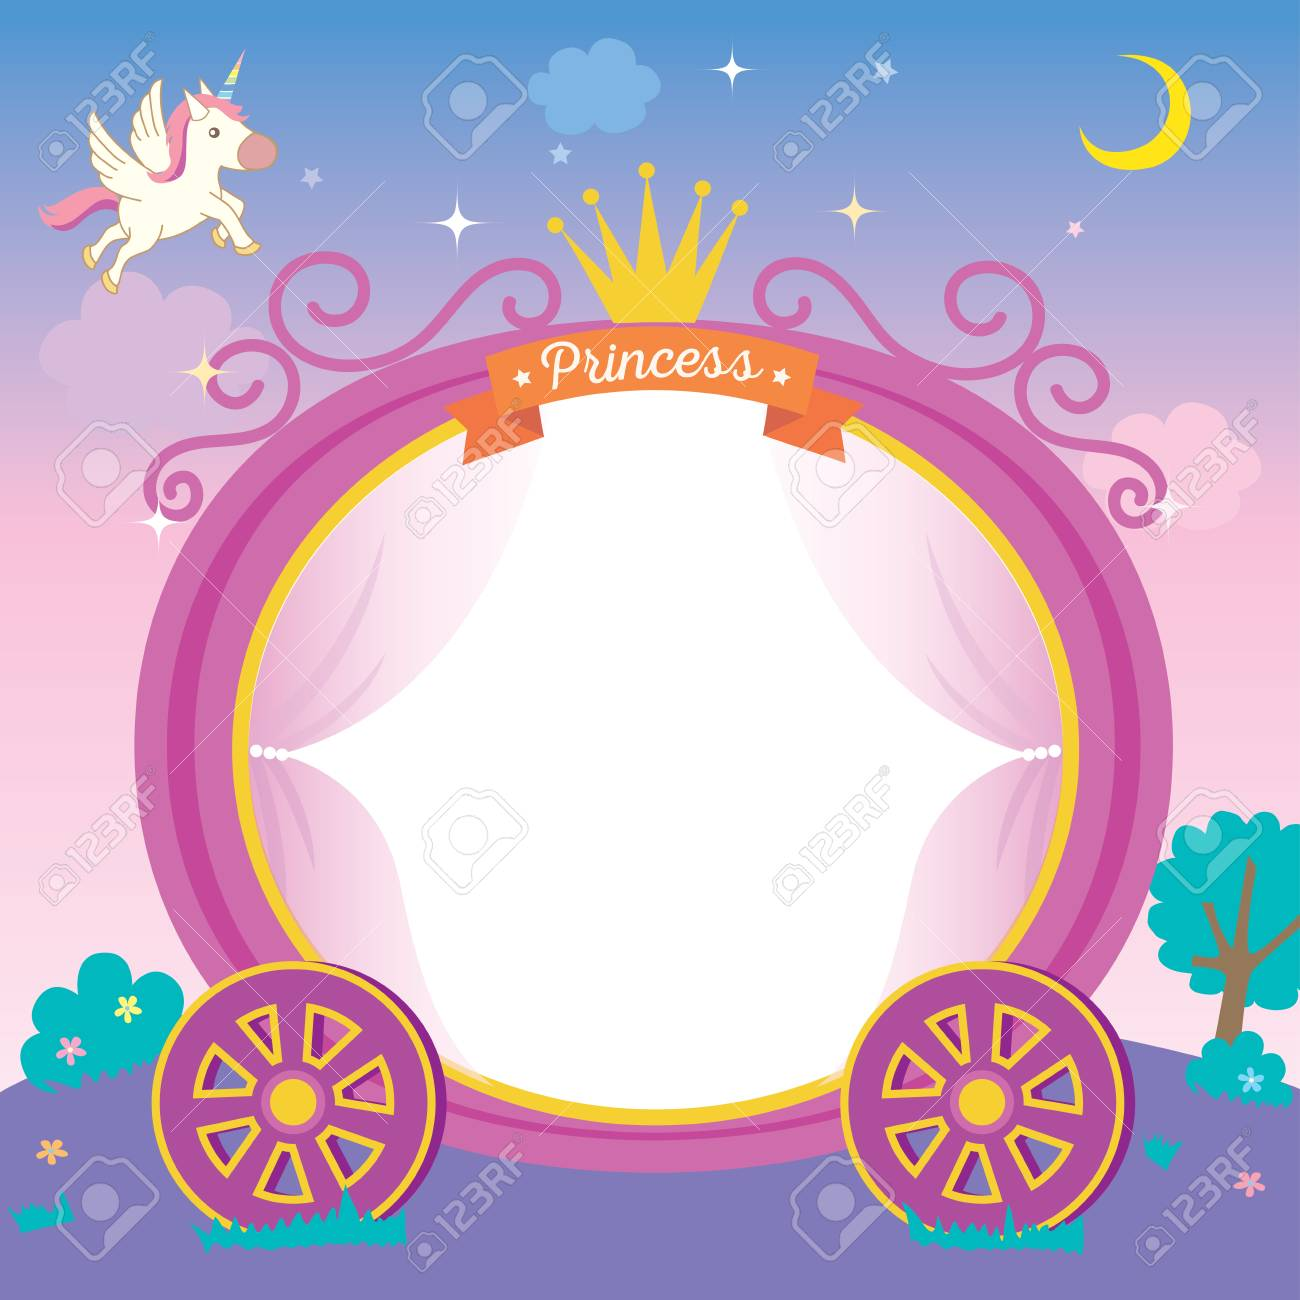 Illustration of cute princess cart template on night background with unicorn stars and moon. - 113092130